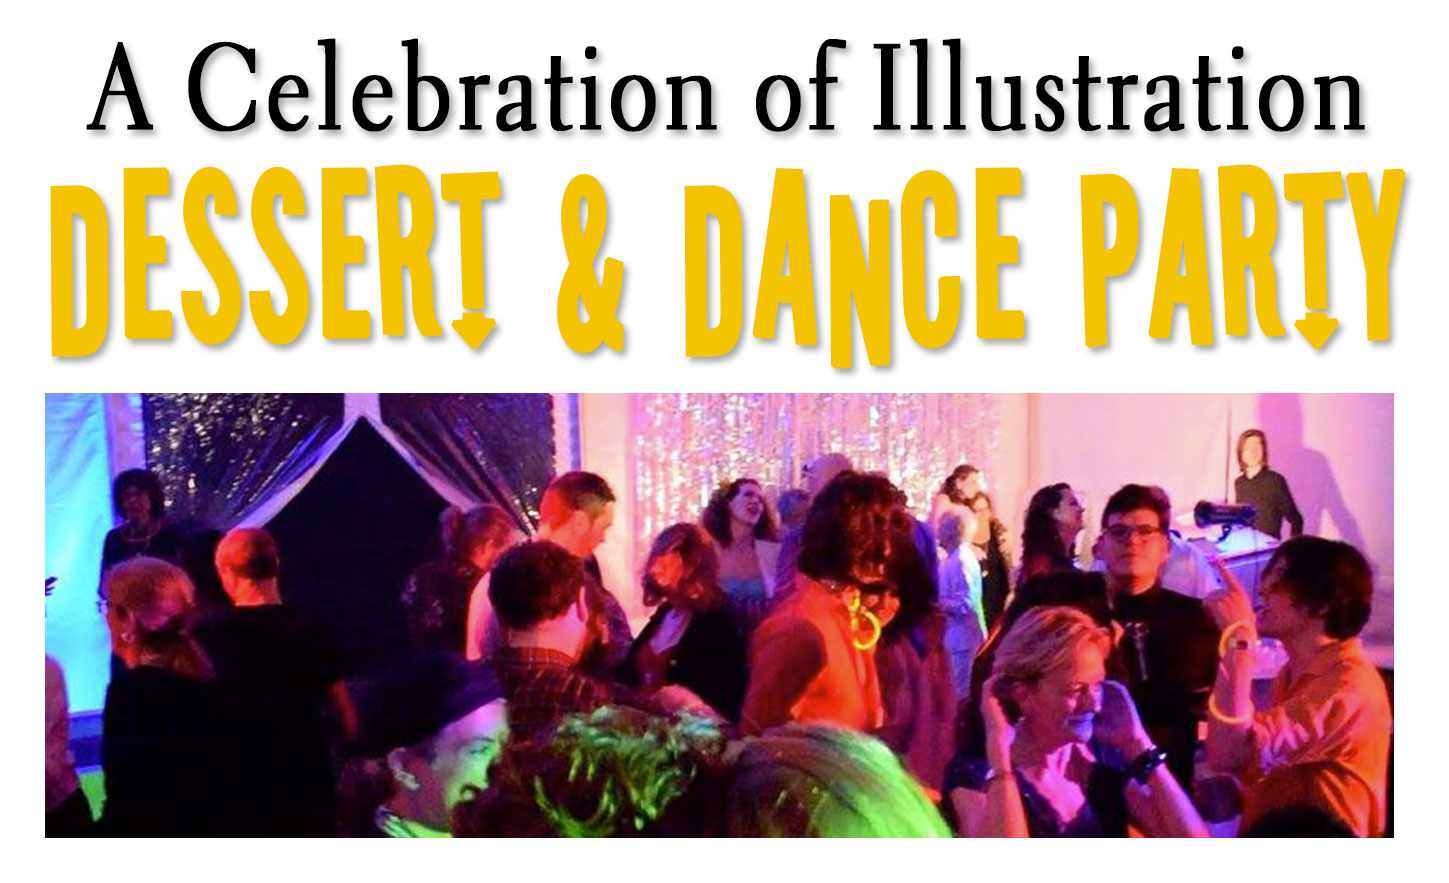 A Celebration of Illustration: Dance Party!